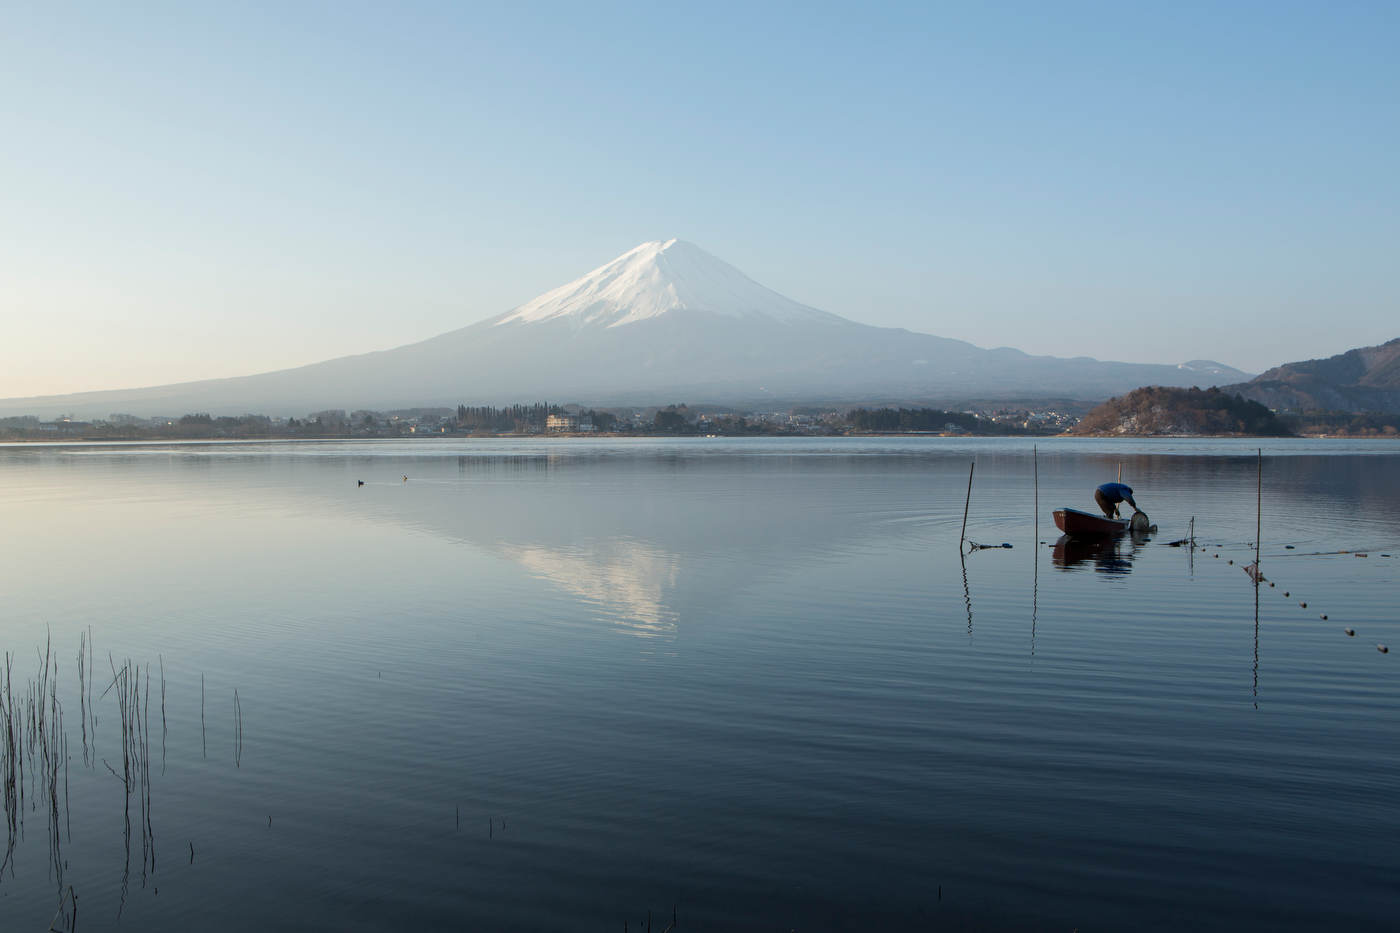 A local fisherman plies the waters of Lake Kawaguchiko, with Mt. Fuji as a backdrop.